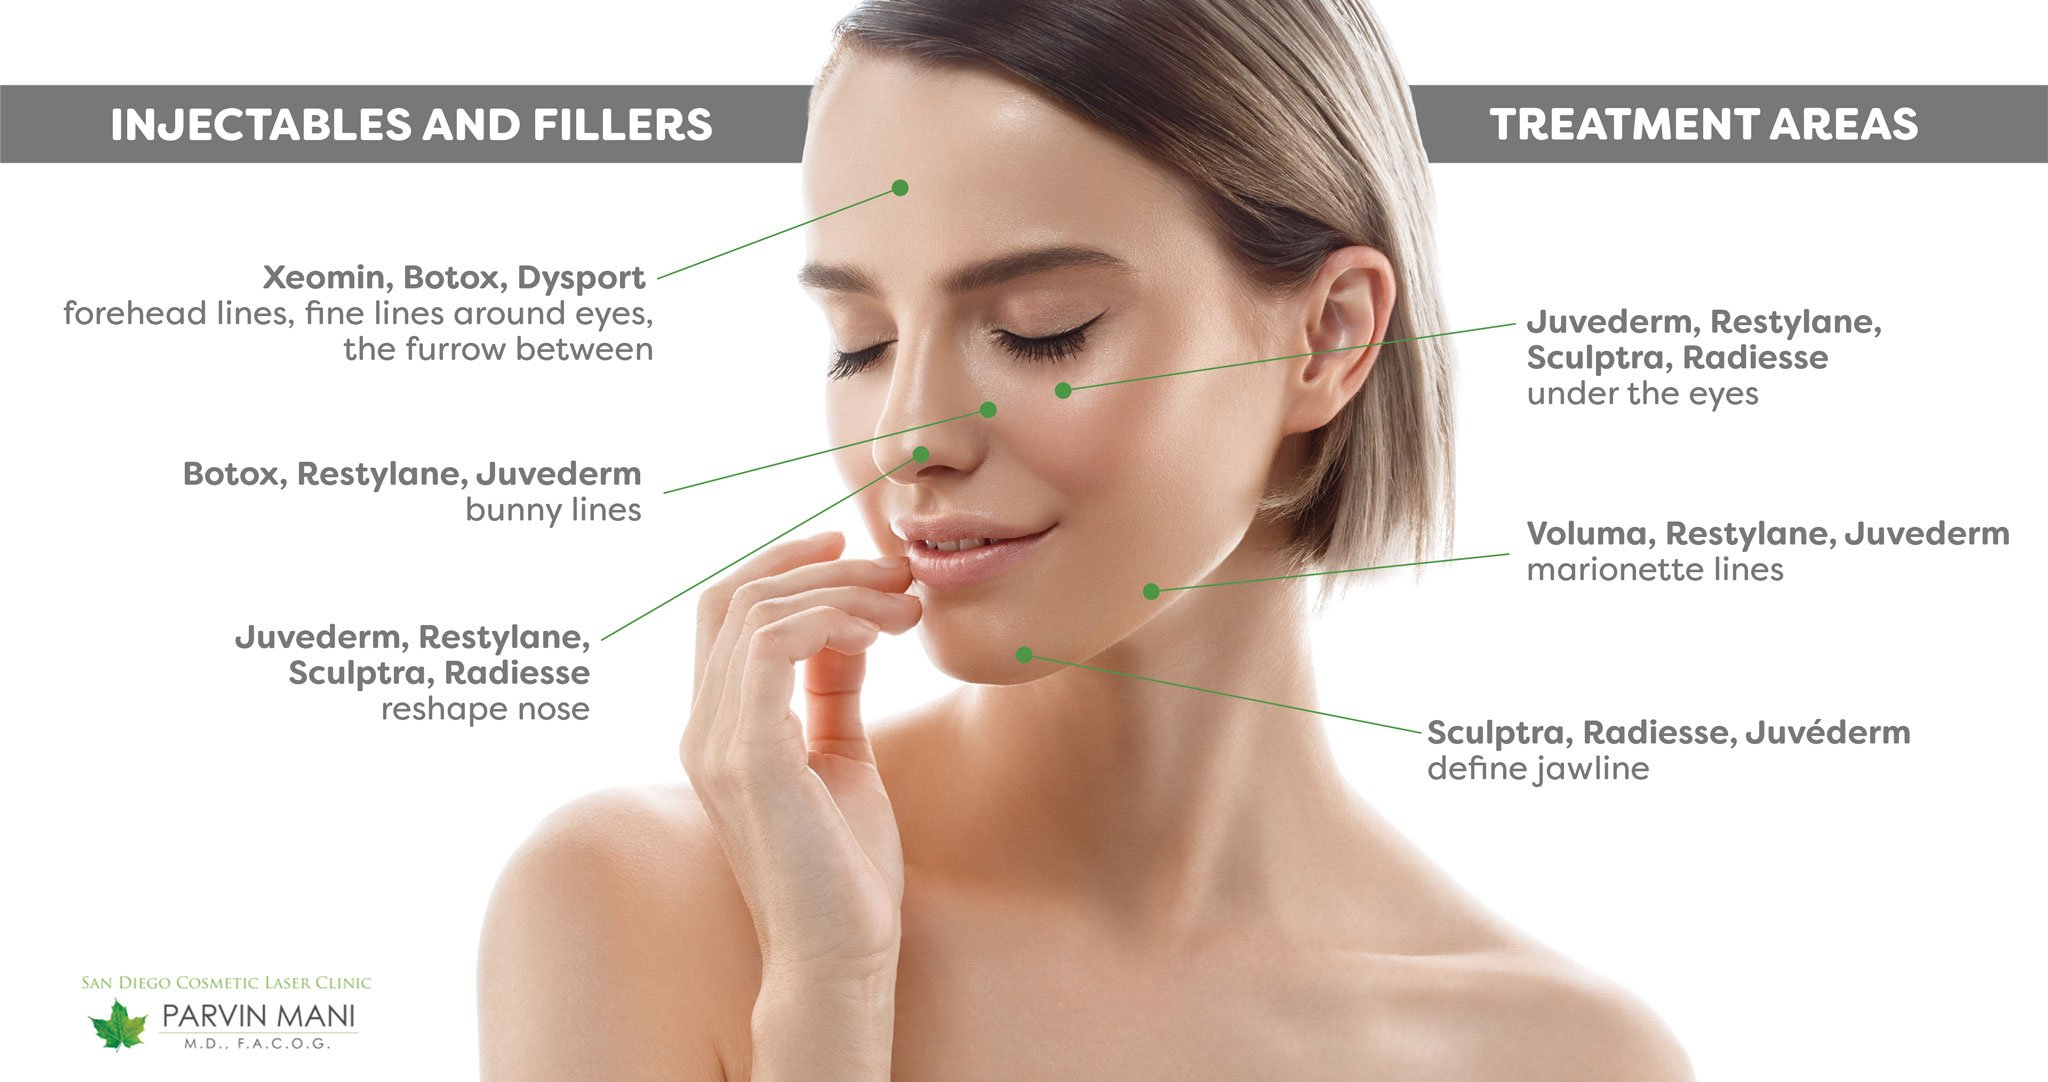 injectable-and-fillers-treatment-areas